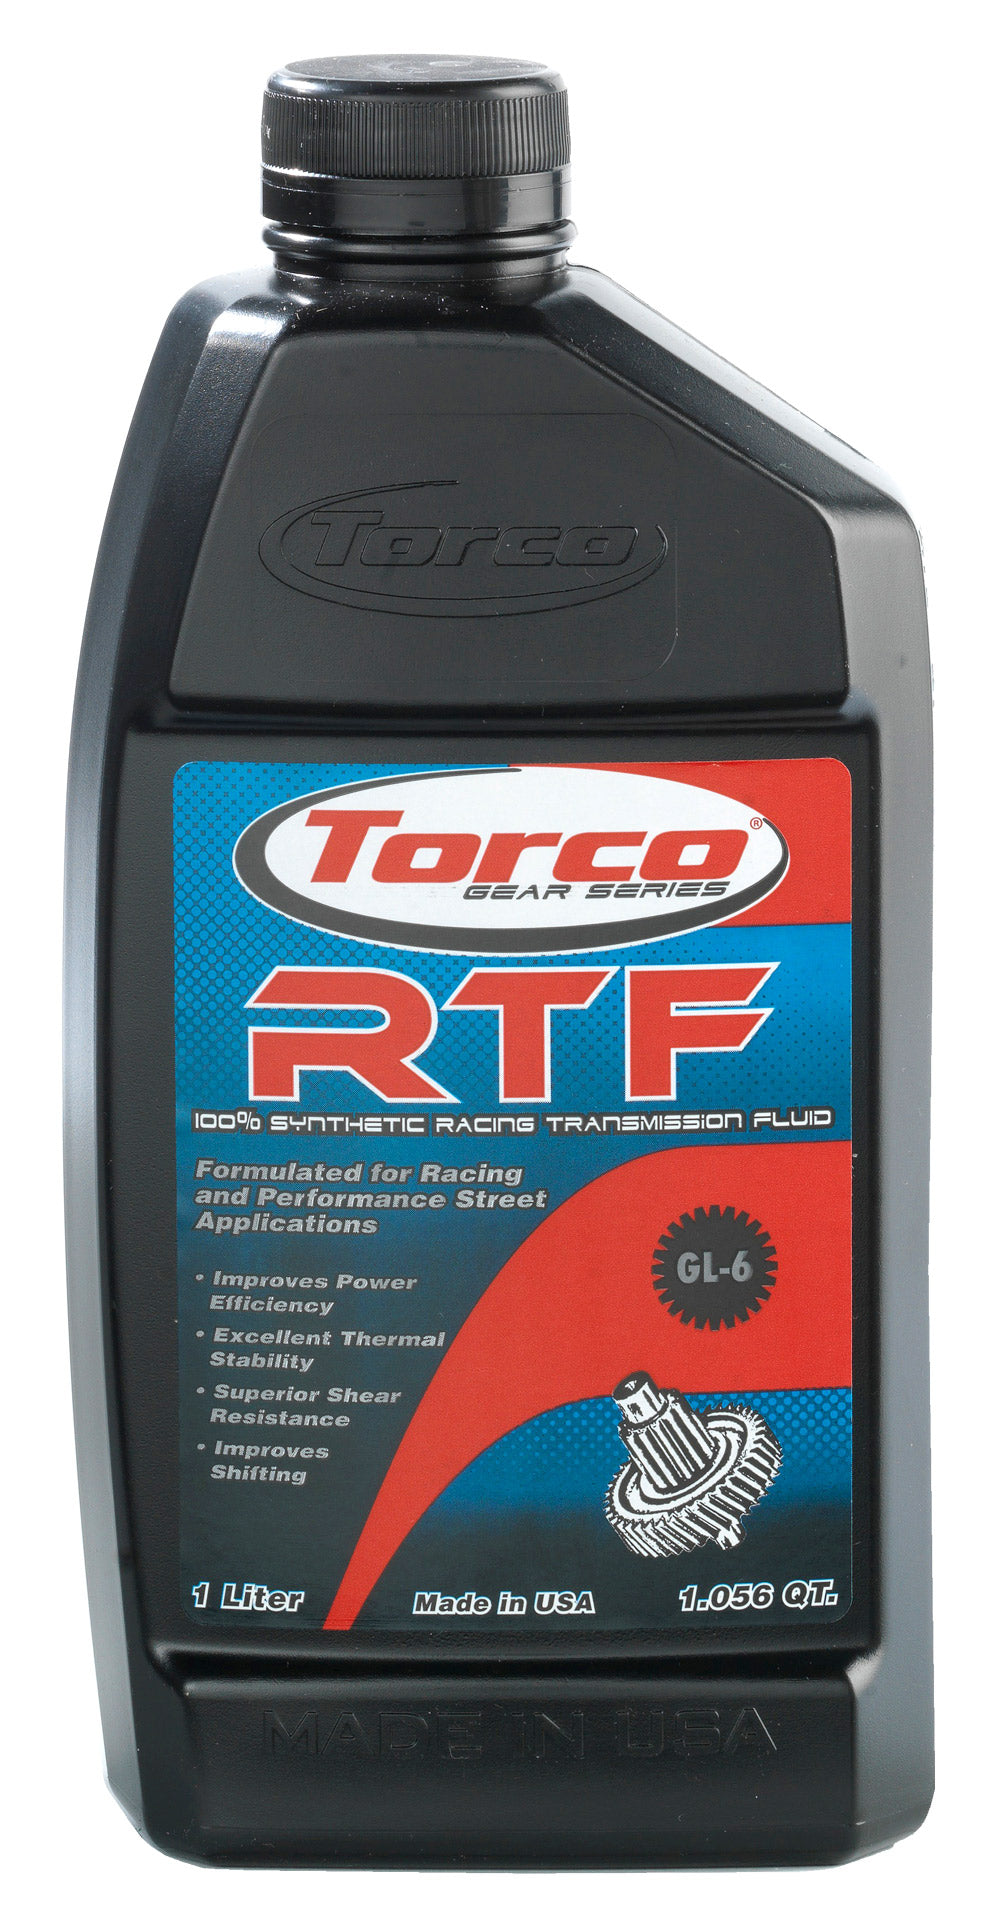 Torco RTF Racing Transmission Fluid